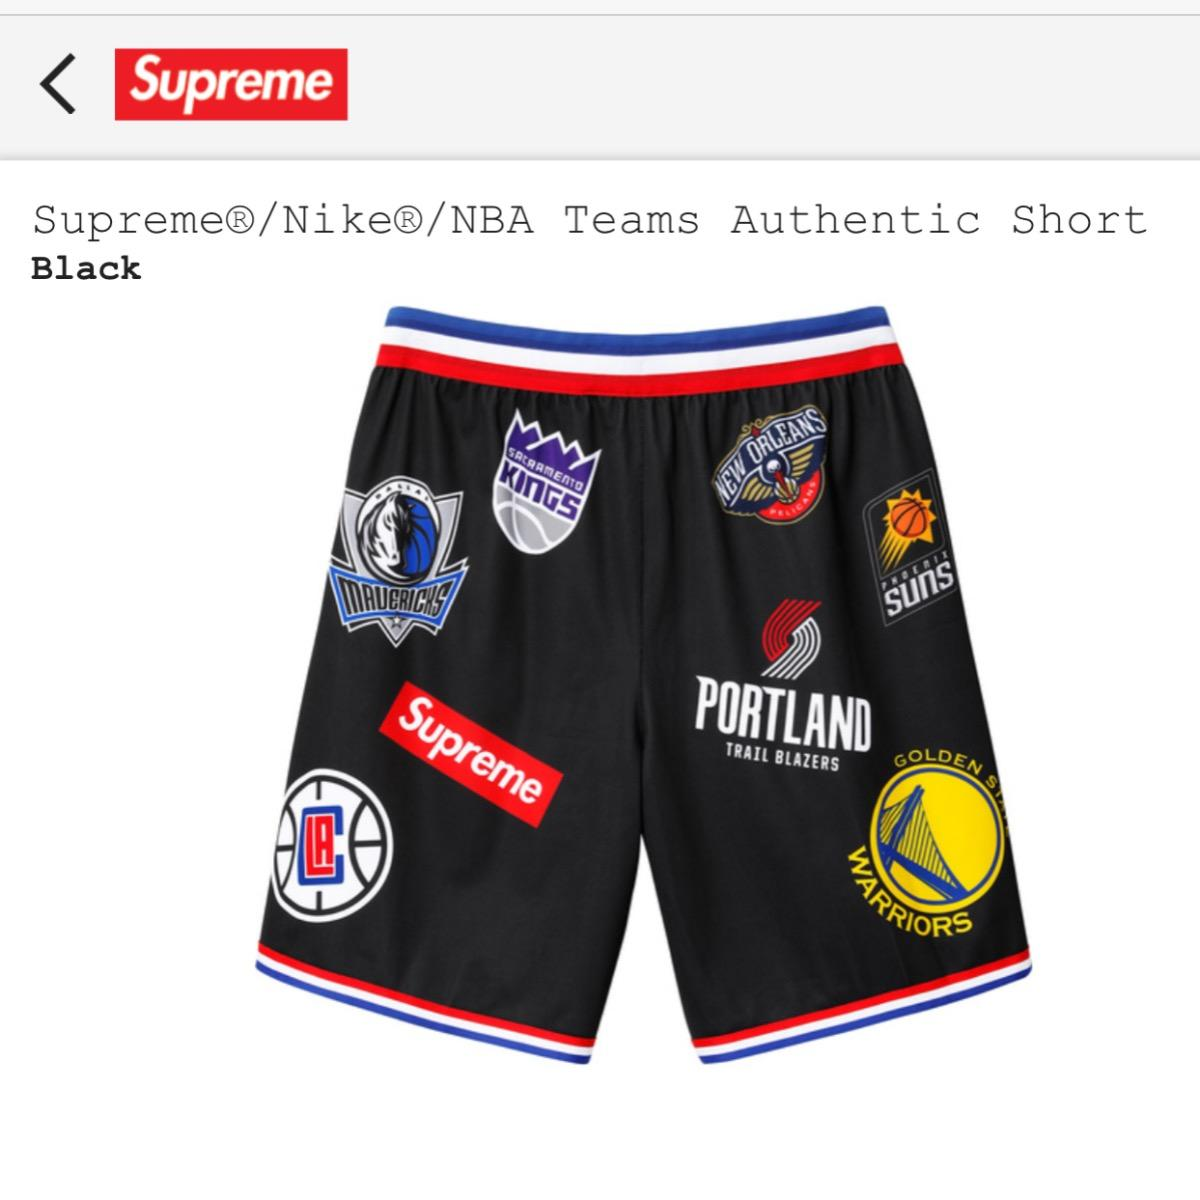 SS18 Supreme x Nike x NBA TEAMS BASKETBALL Shorts • Pants ... Nike Basketball Shirts